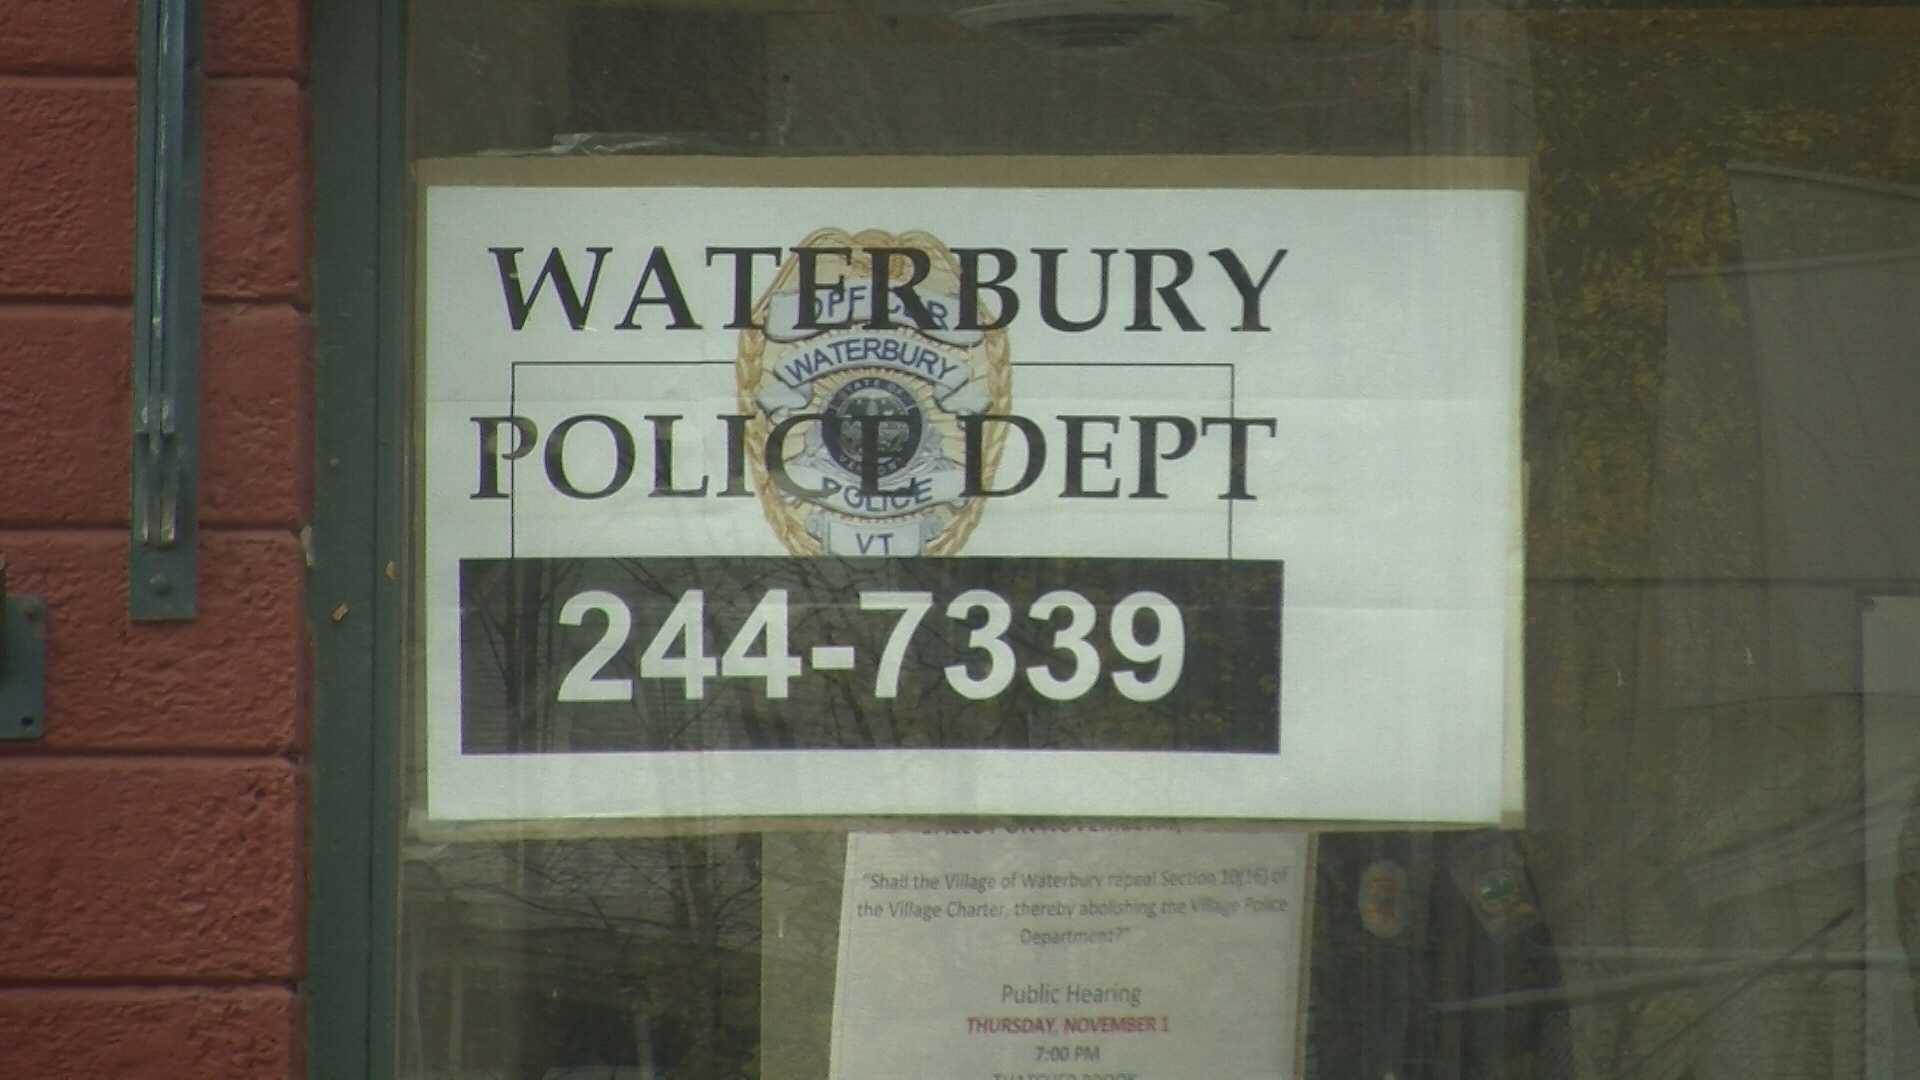 Officials in the village of Waterbury have put the possible dissolution of the local police department on the election day ballot.